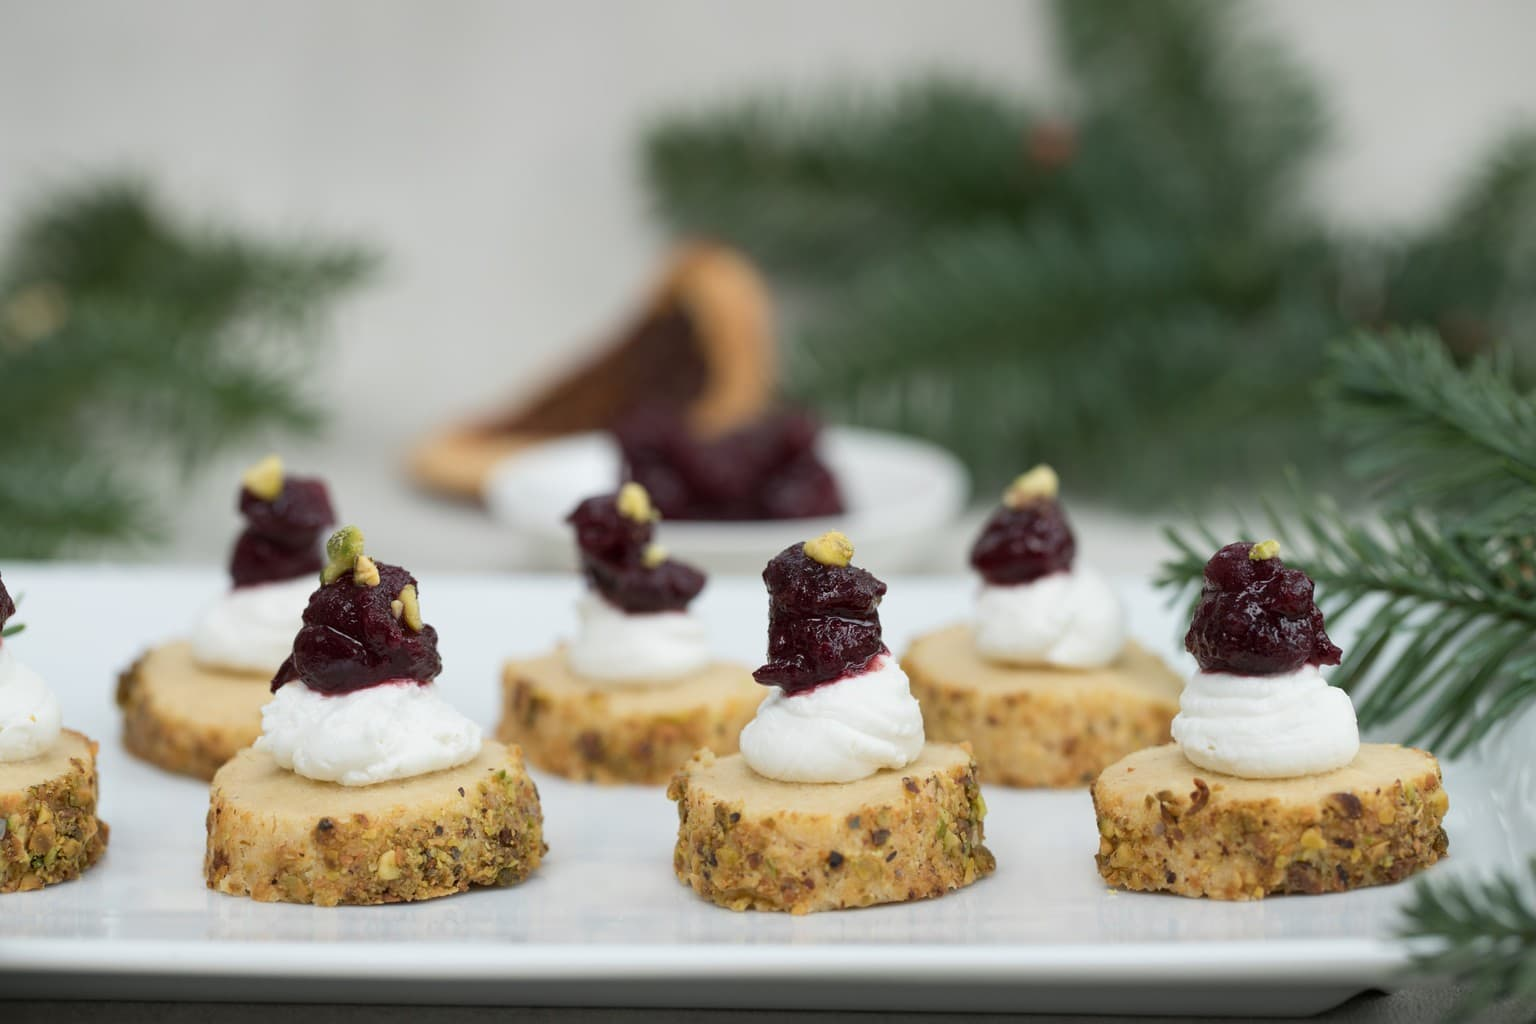 Cardamom and Pistachio Short Breads with Whipped Goats Cheese and Persian Cranberry Compote